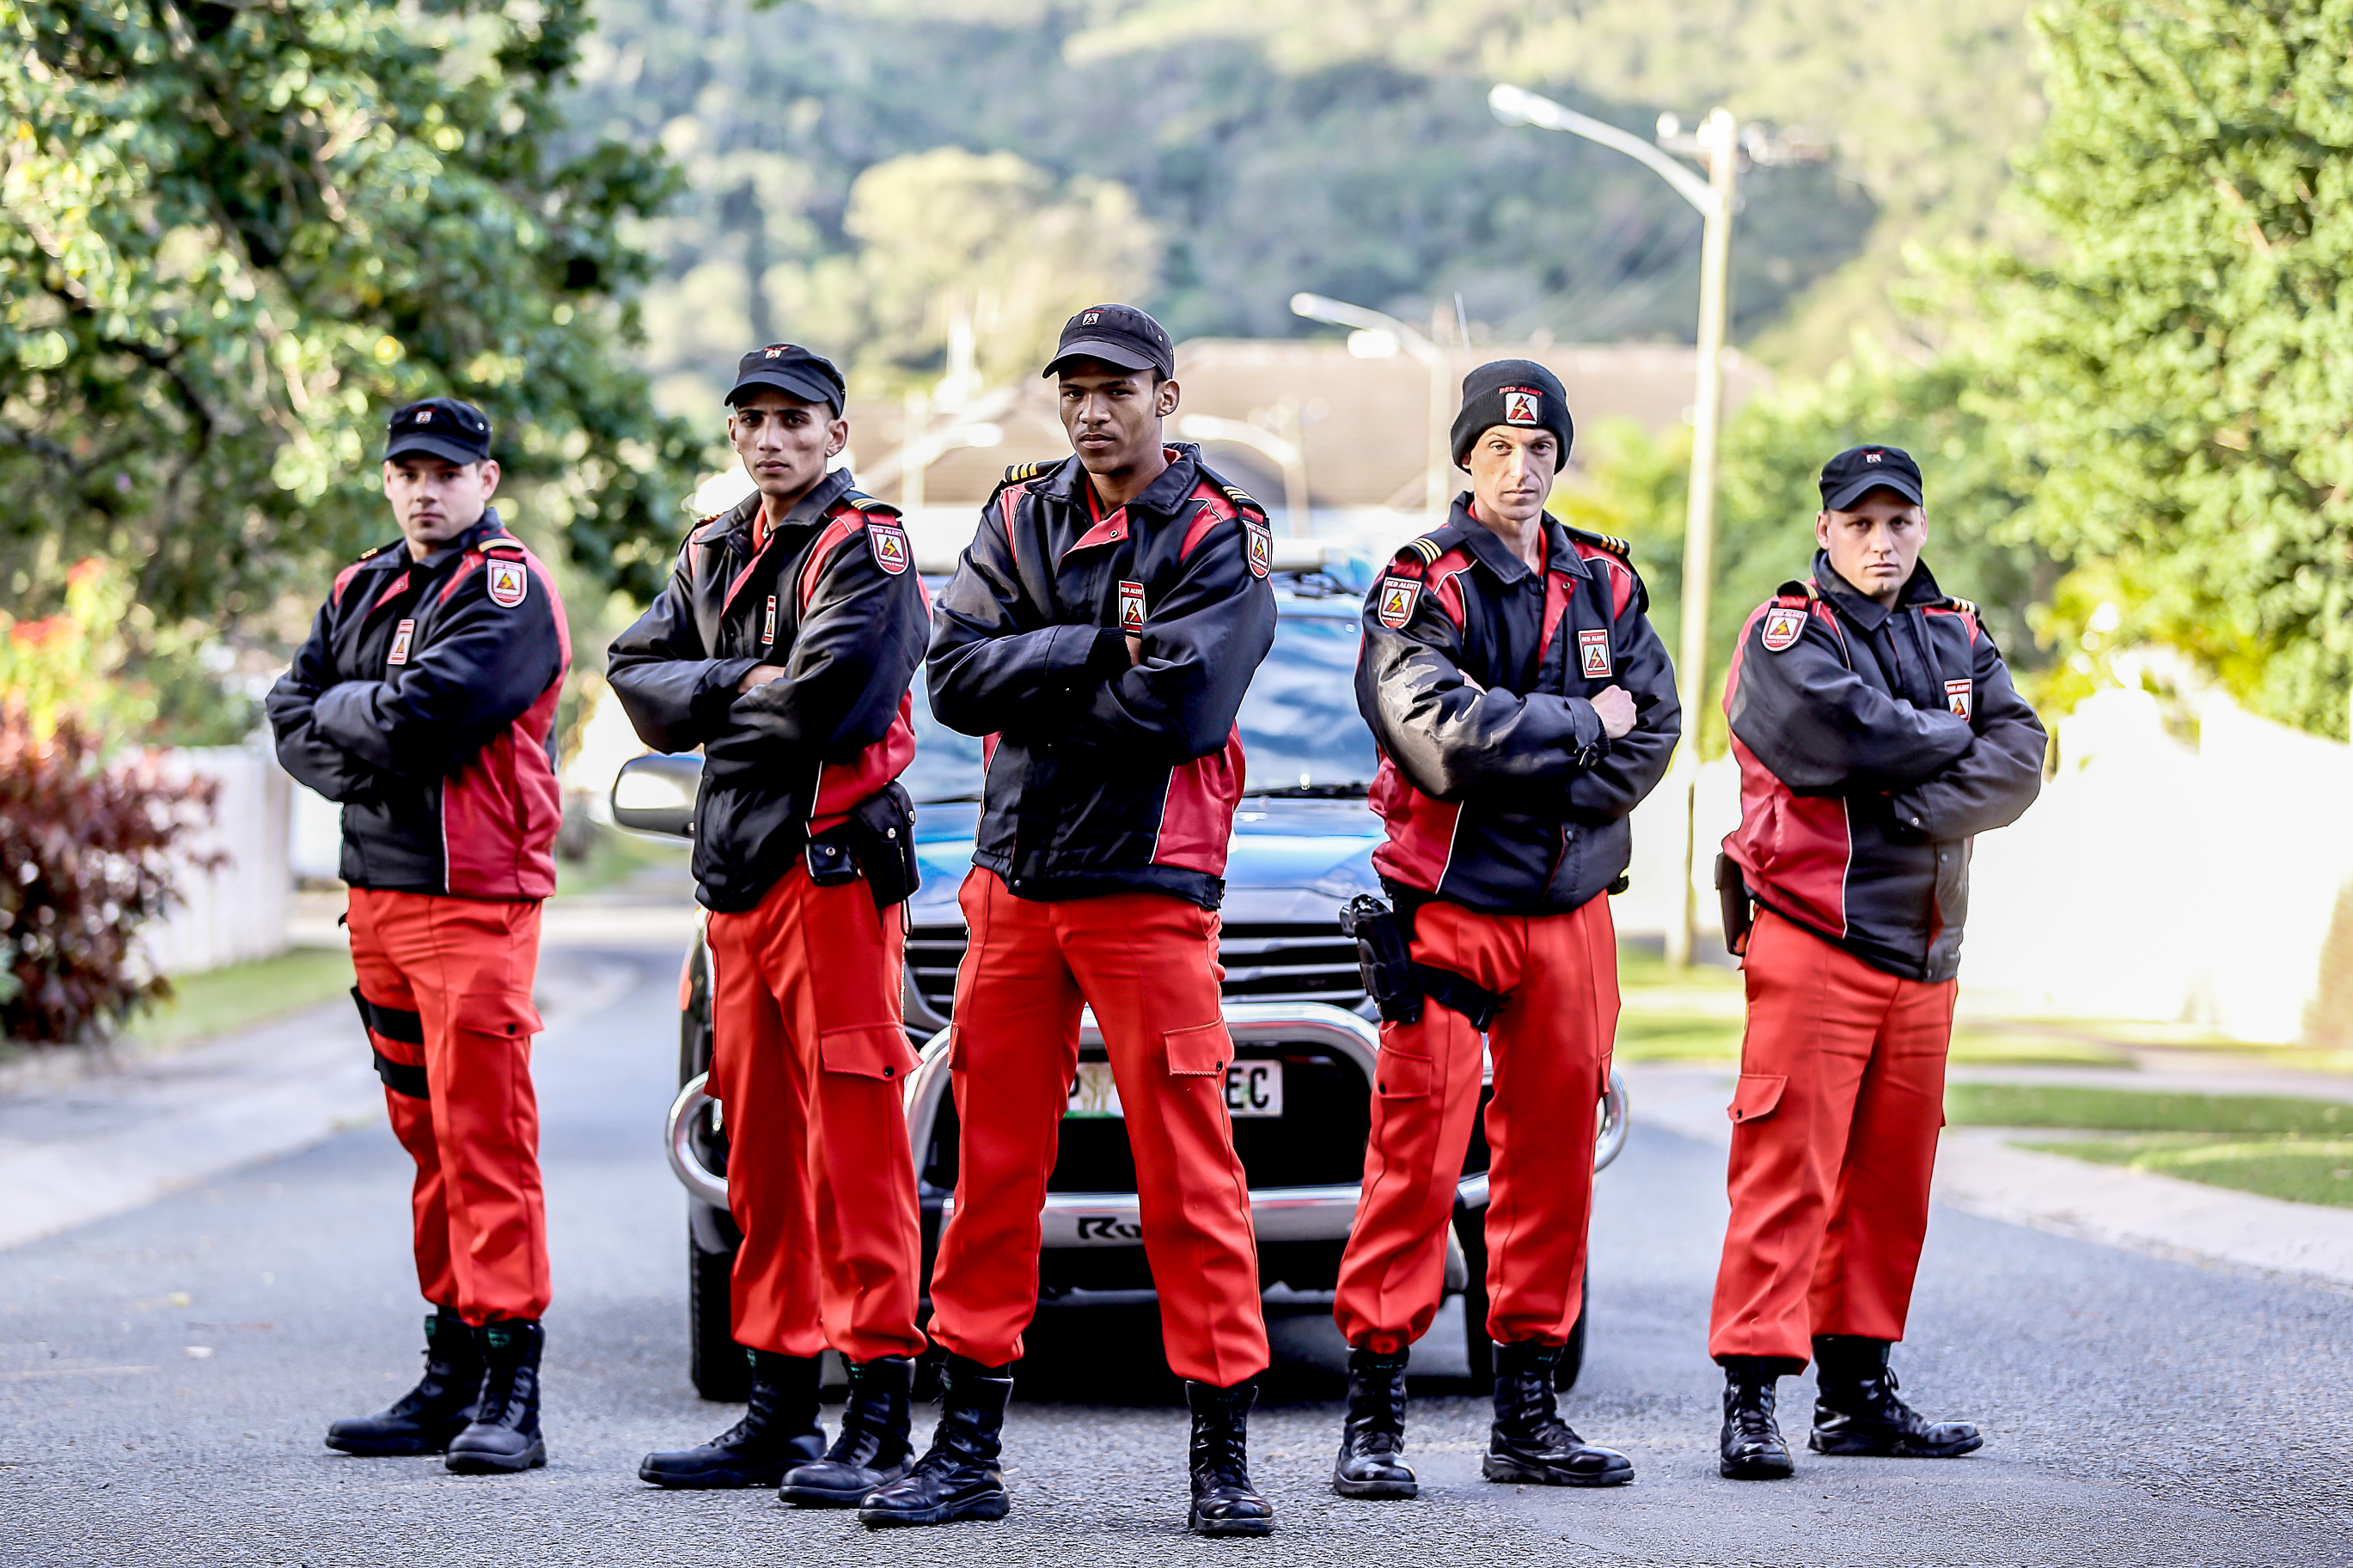 Red Alert Cleaning Amp Security Company South Africa